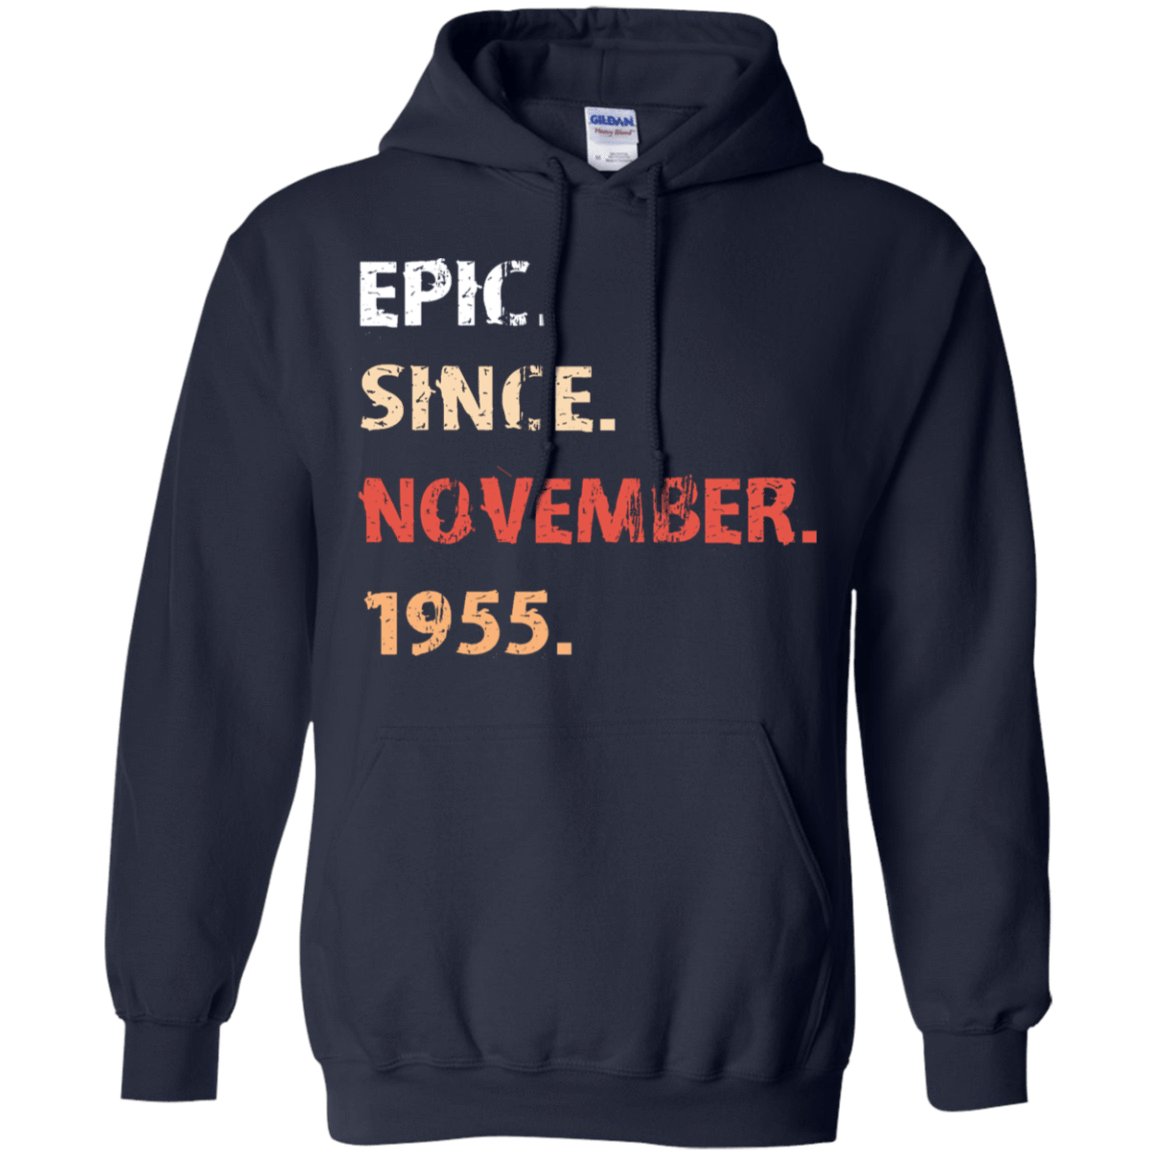 Epic Since November 1955 Birthday Gift 541-4742-71482139-23135 - Tee Ript